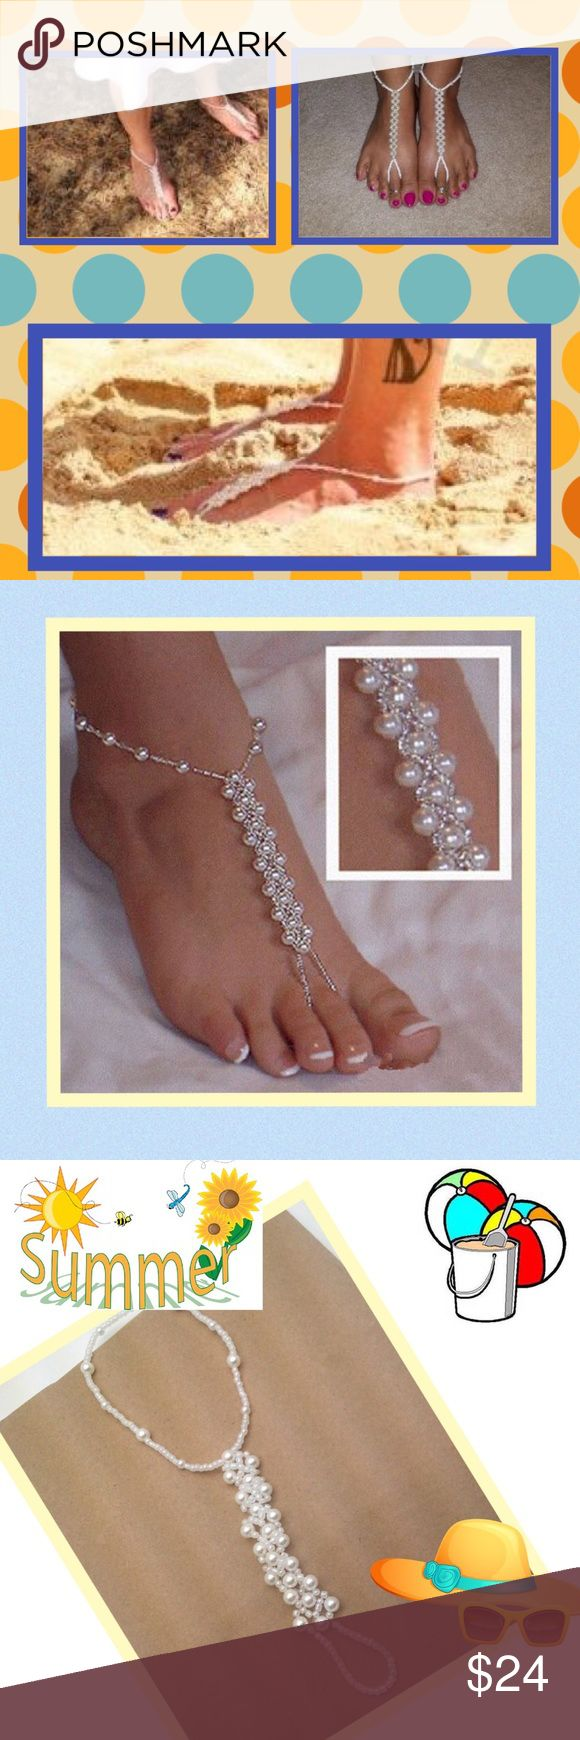 Set of Faux Pearl Foot Jewelry/Soleless Sandals ☀️ Stunning triple Pearl Design. ☀️Wear as Ankle to Toe Soleless Sandals or with your Sandals as foot/ankle jewelry ☀️Wear with or without sandals☀️Beautiful, Trending,Unique, & Versatile! ☀️Ideal For Holiday & Beach Wear. ☀️Perfect for Bridal Wear weddings abroad during Summer months.  ☀️Elasticated throughout ☀️From beach to Boardwalk ☀️From flip flops to bare feet Jewelry